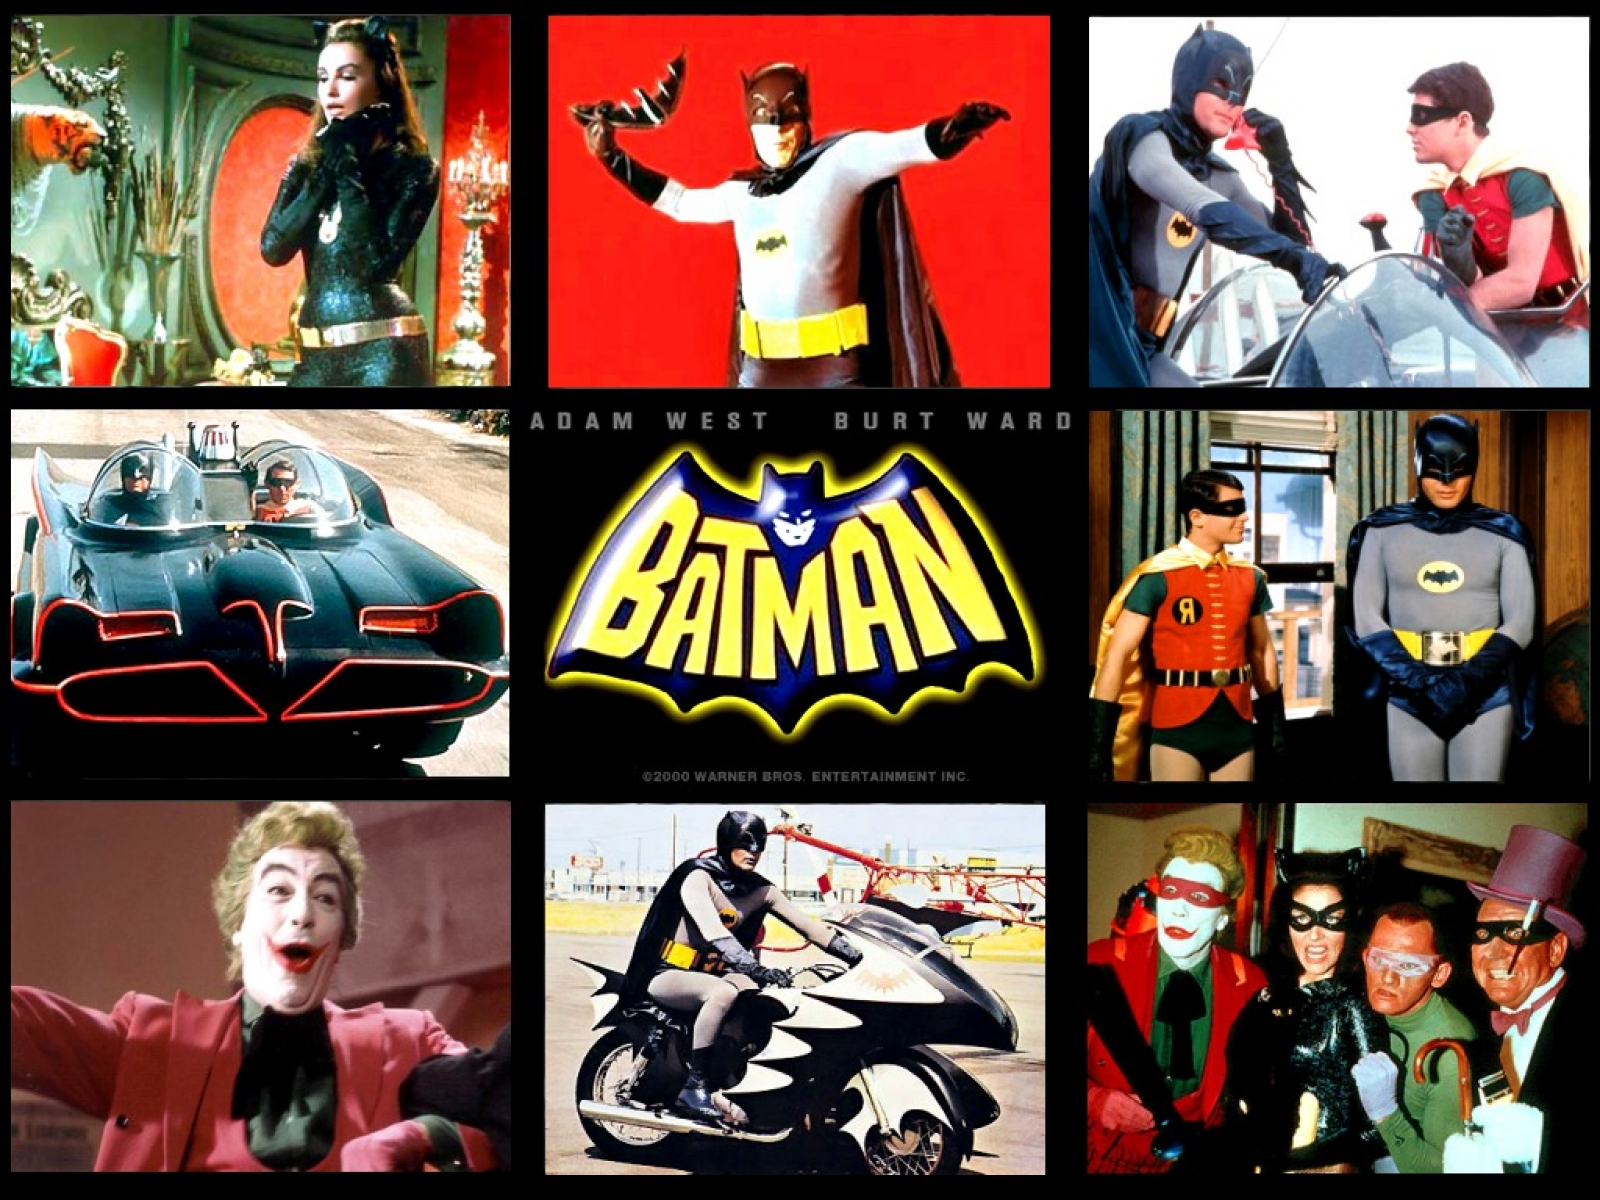 Batman-old-tv-show-1600-1200